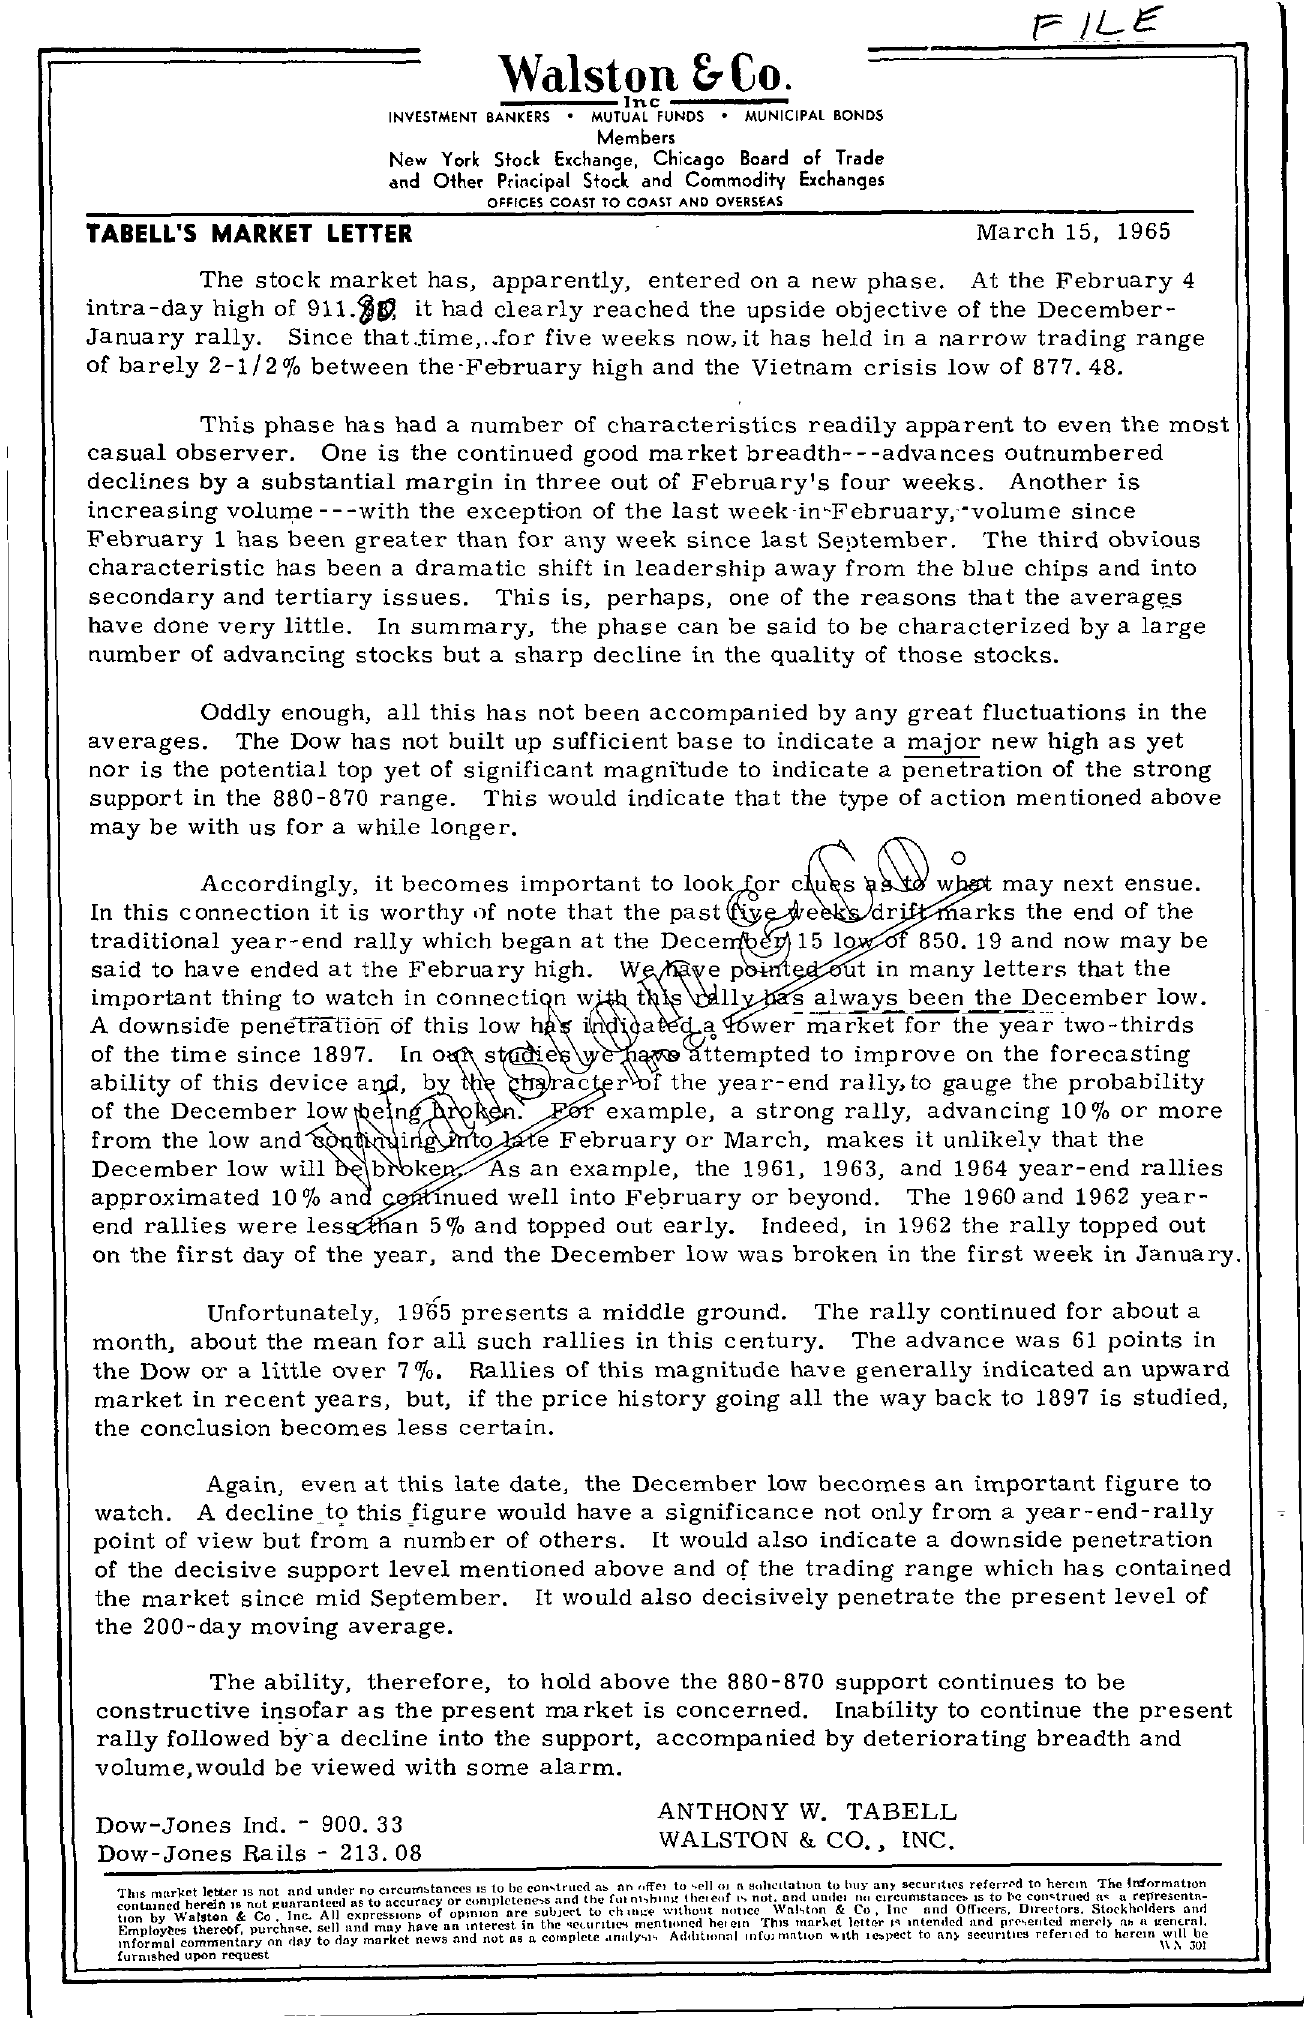 Tabell's Market Letter - March 15, 1965